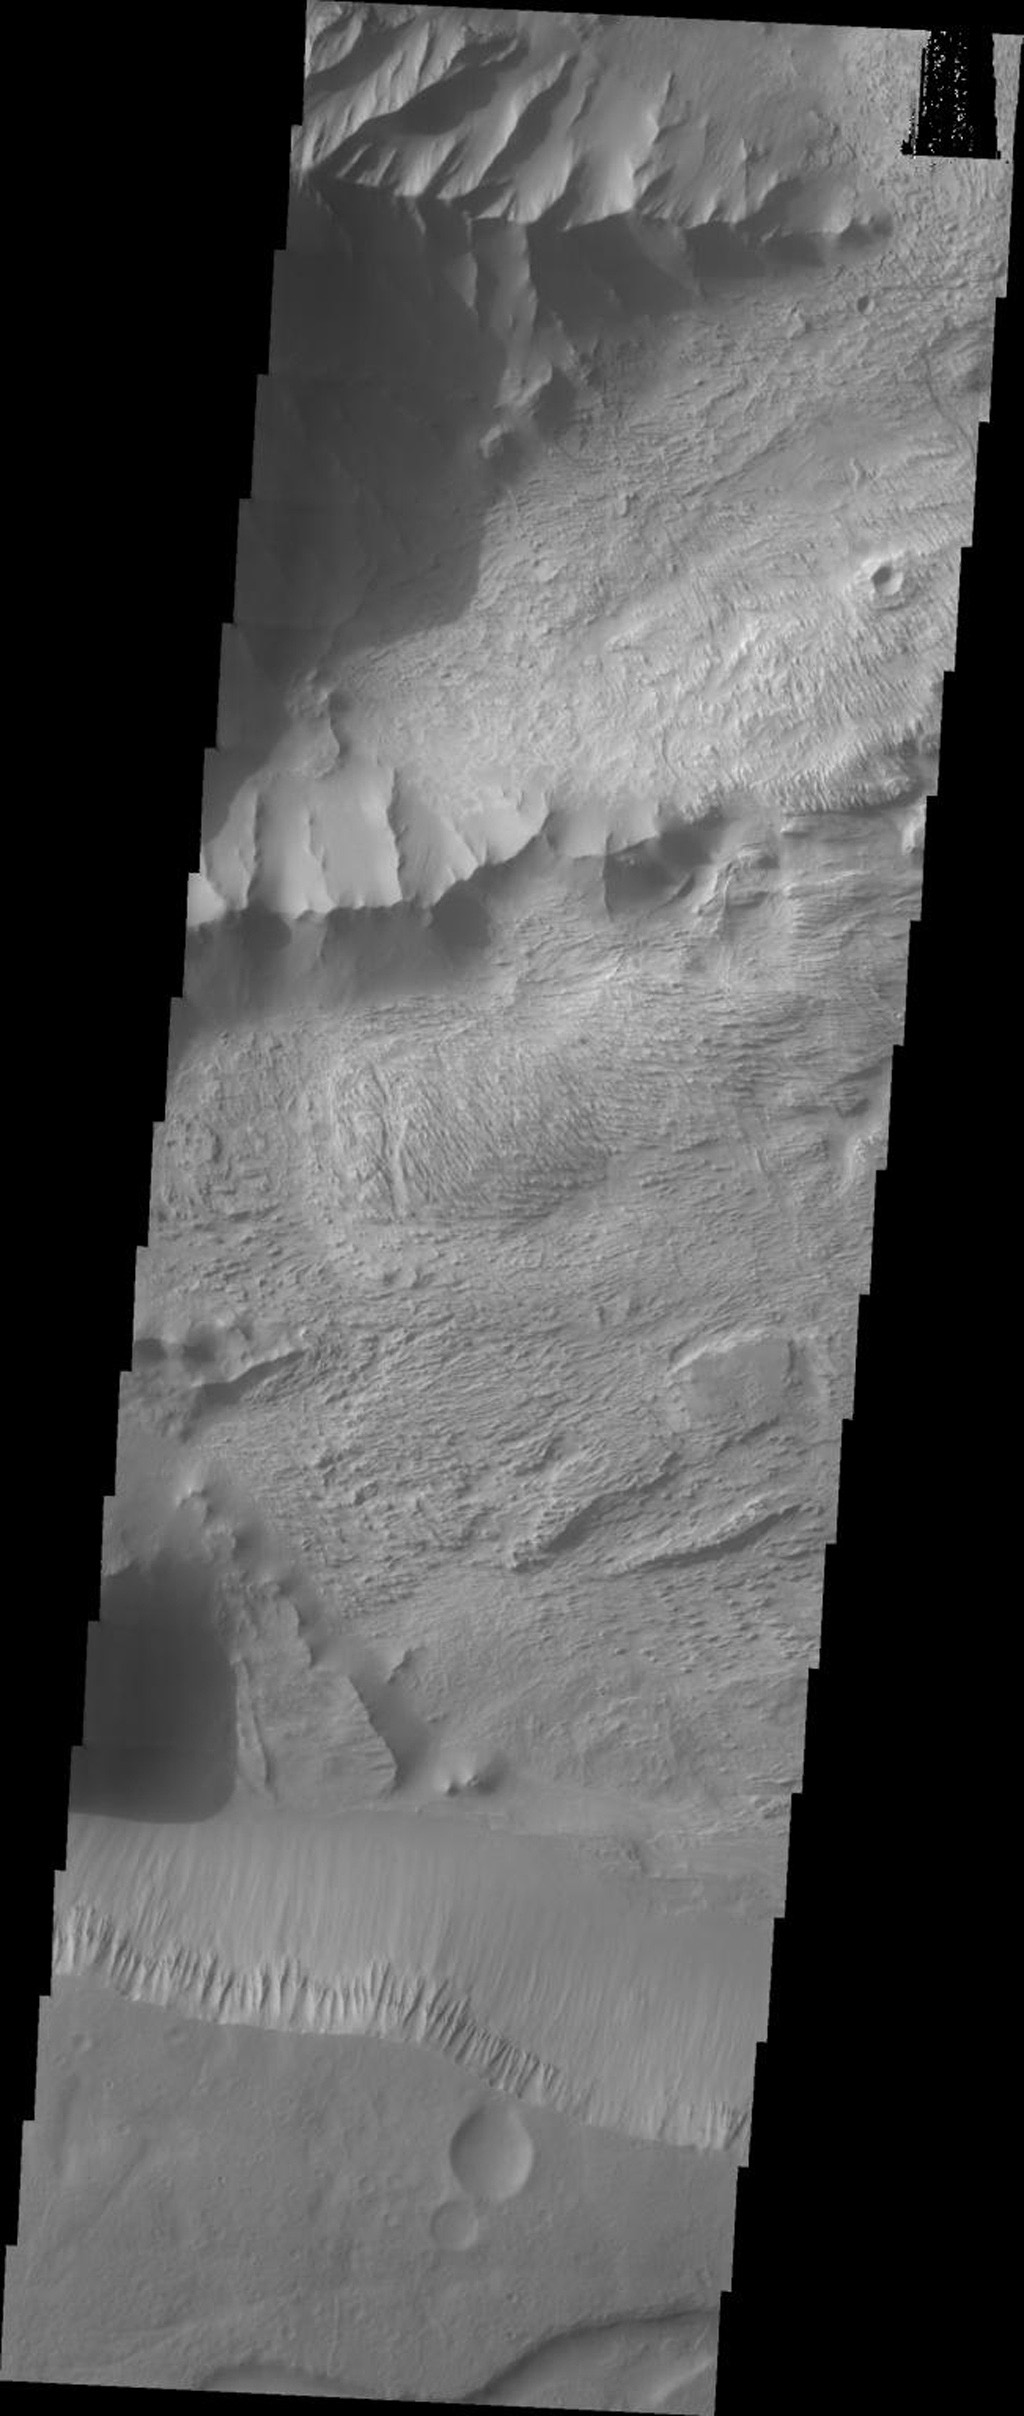 This image released on Sept 27, 2004 from NASA's 2001 Mars Odyssey shows a part of Candor Chasma on Mars. Wind etched surfaces are dominant on this picture, but gullies and layered rock formations are also present in this area.